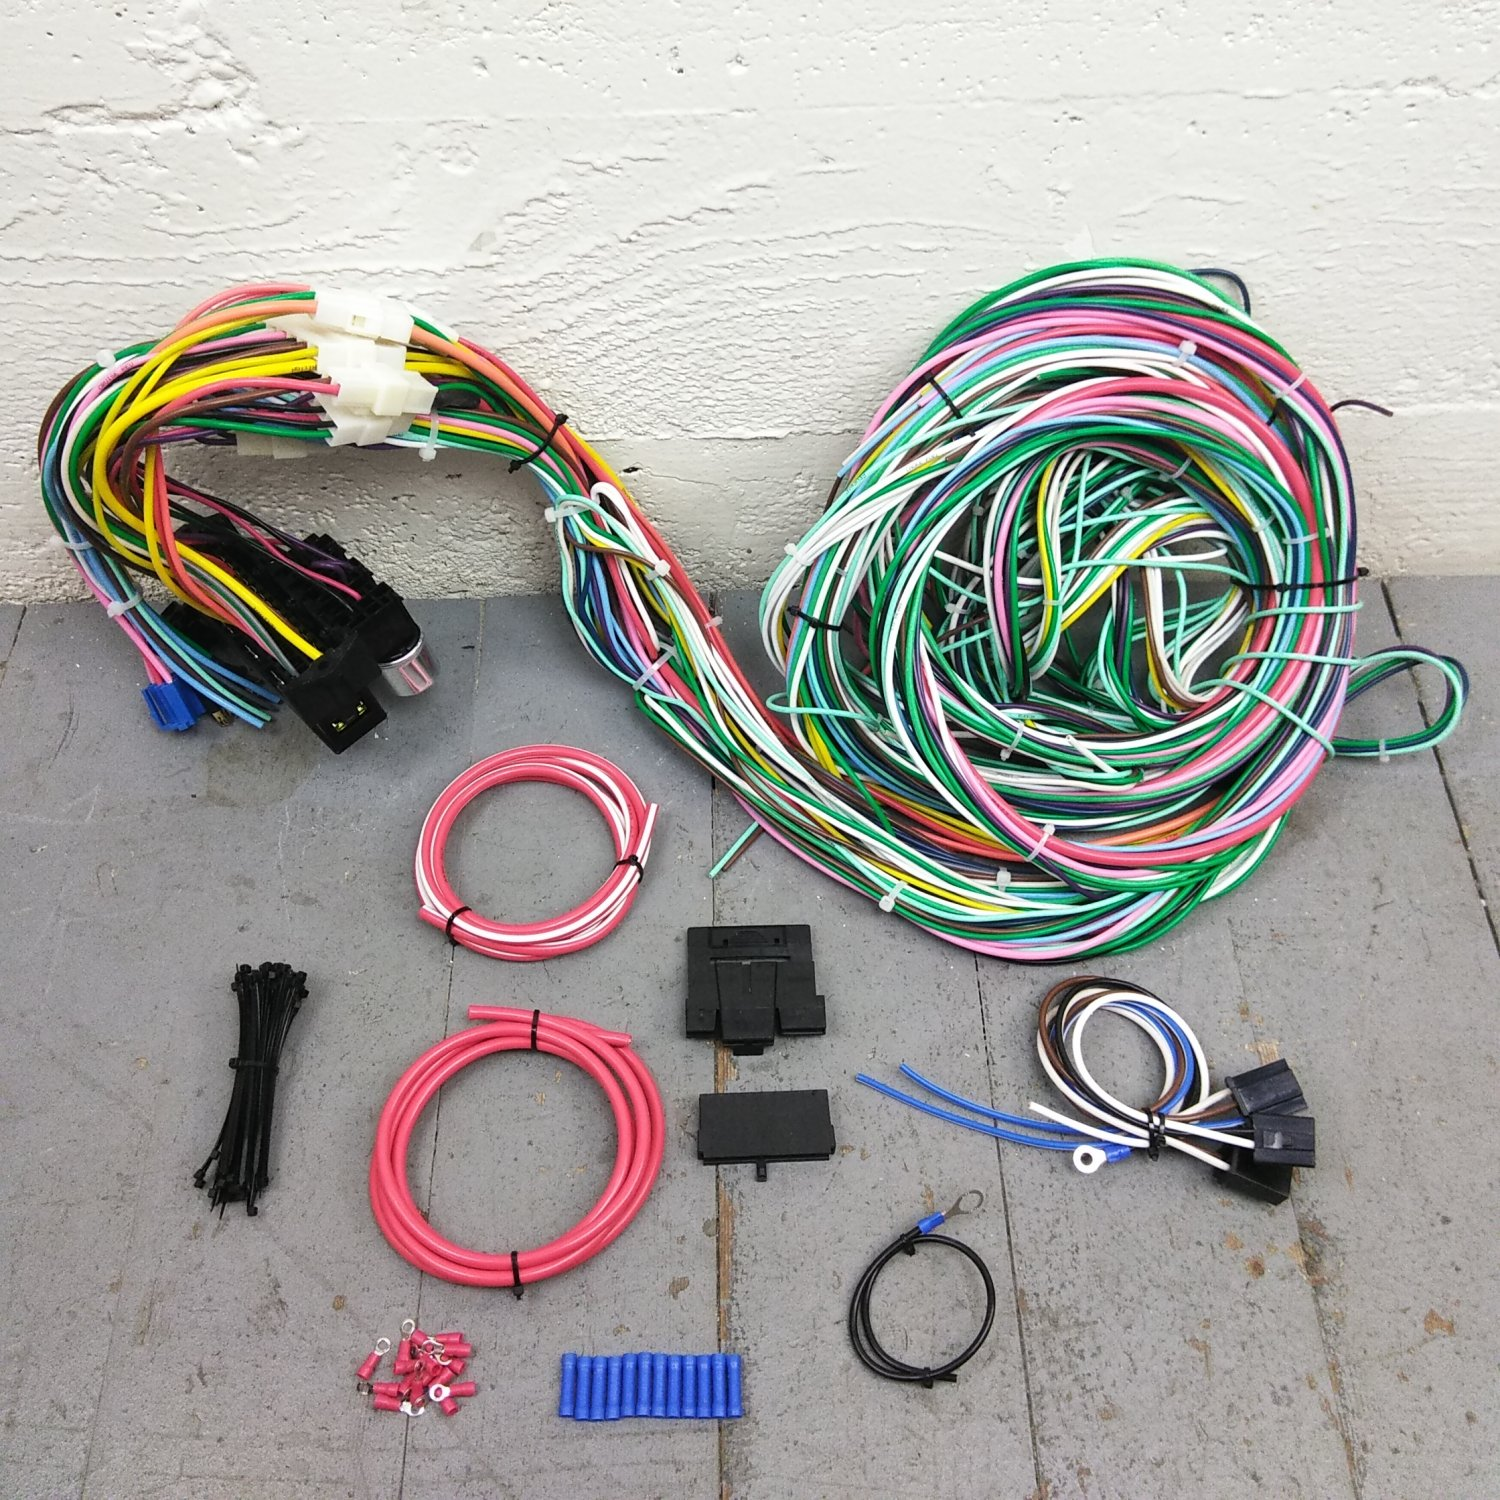 1950 - 1954 Chevy Car Wire Harness Upgrade Kit fits painless compact fuse  block. Bar_Product_Description_C